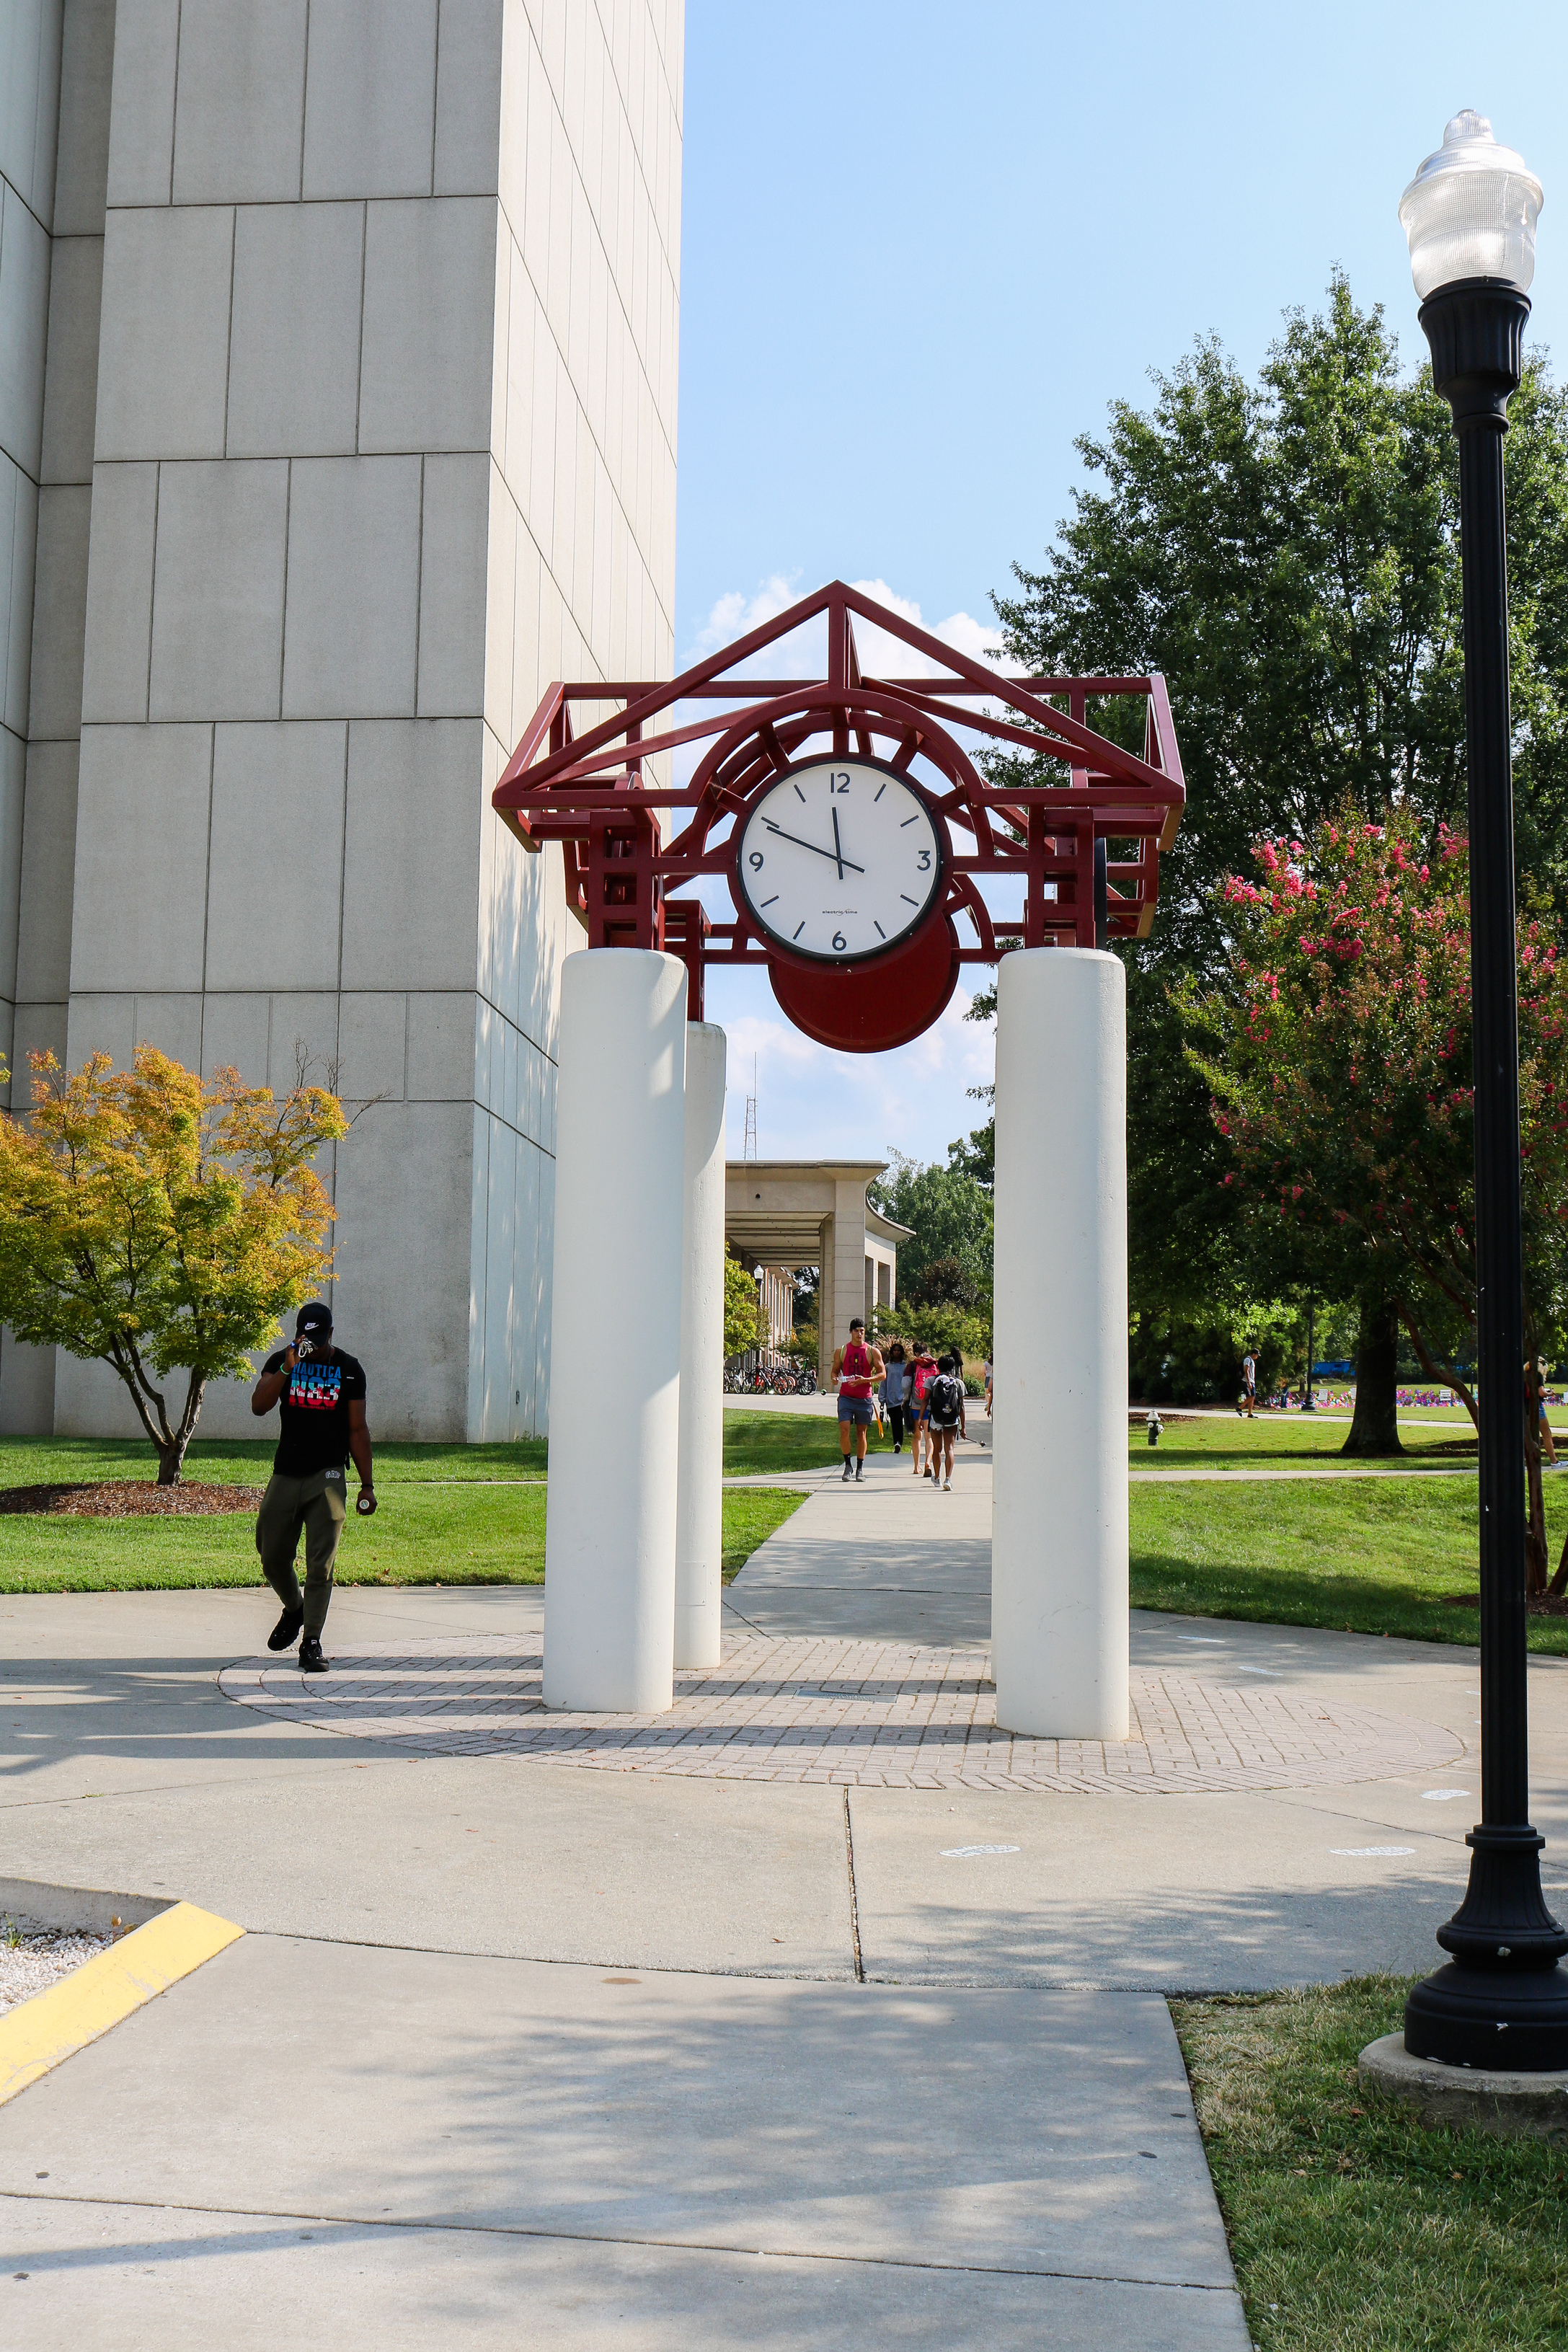 University of North Carolina at Greensboro clock